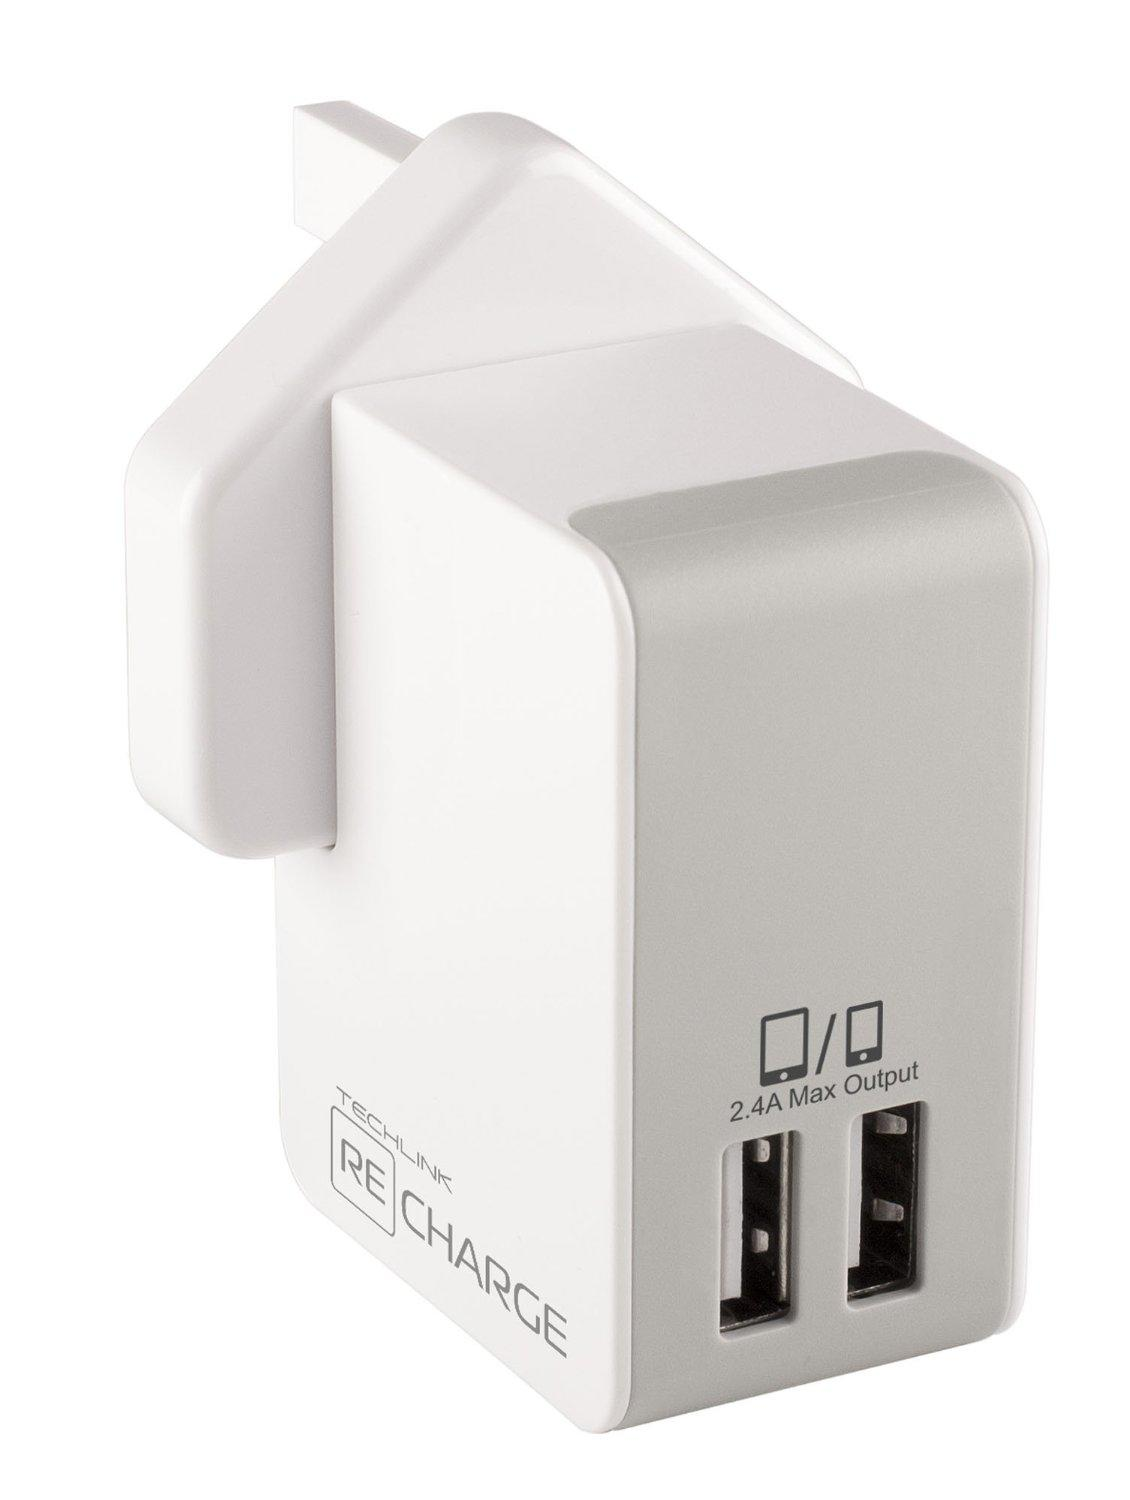 Techlink ReCharge 2.4A Wall Charger with Dual USB Output